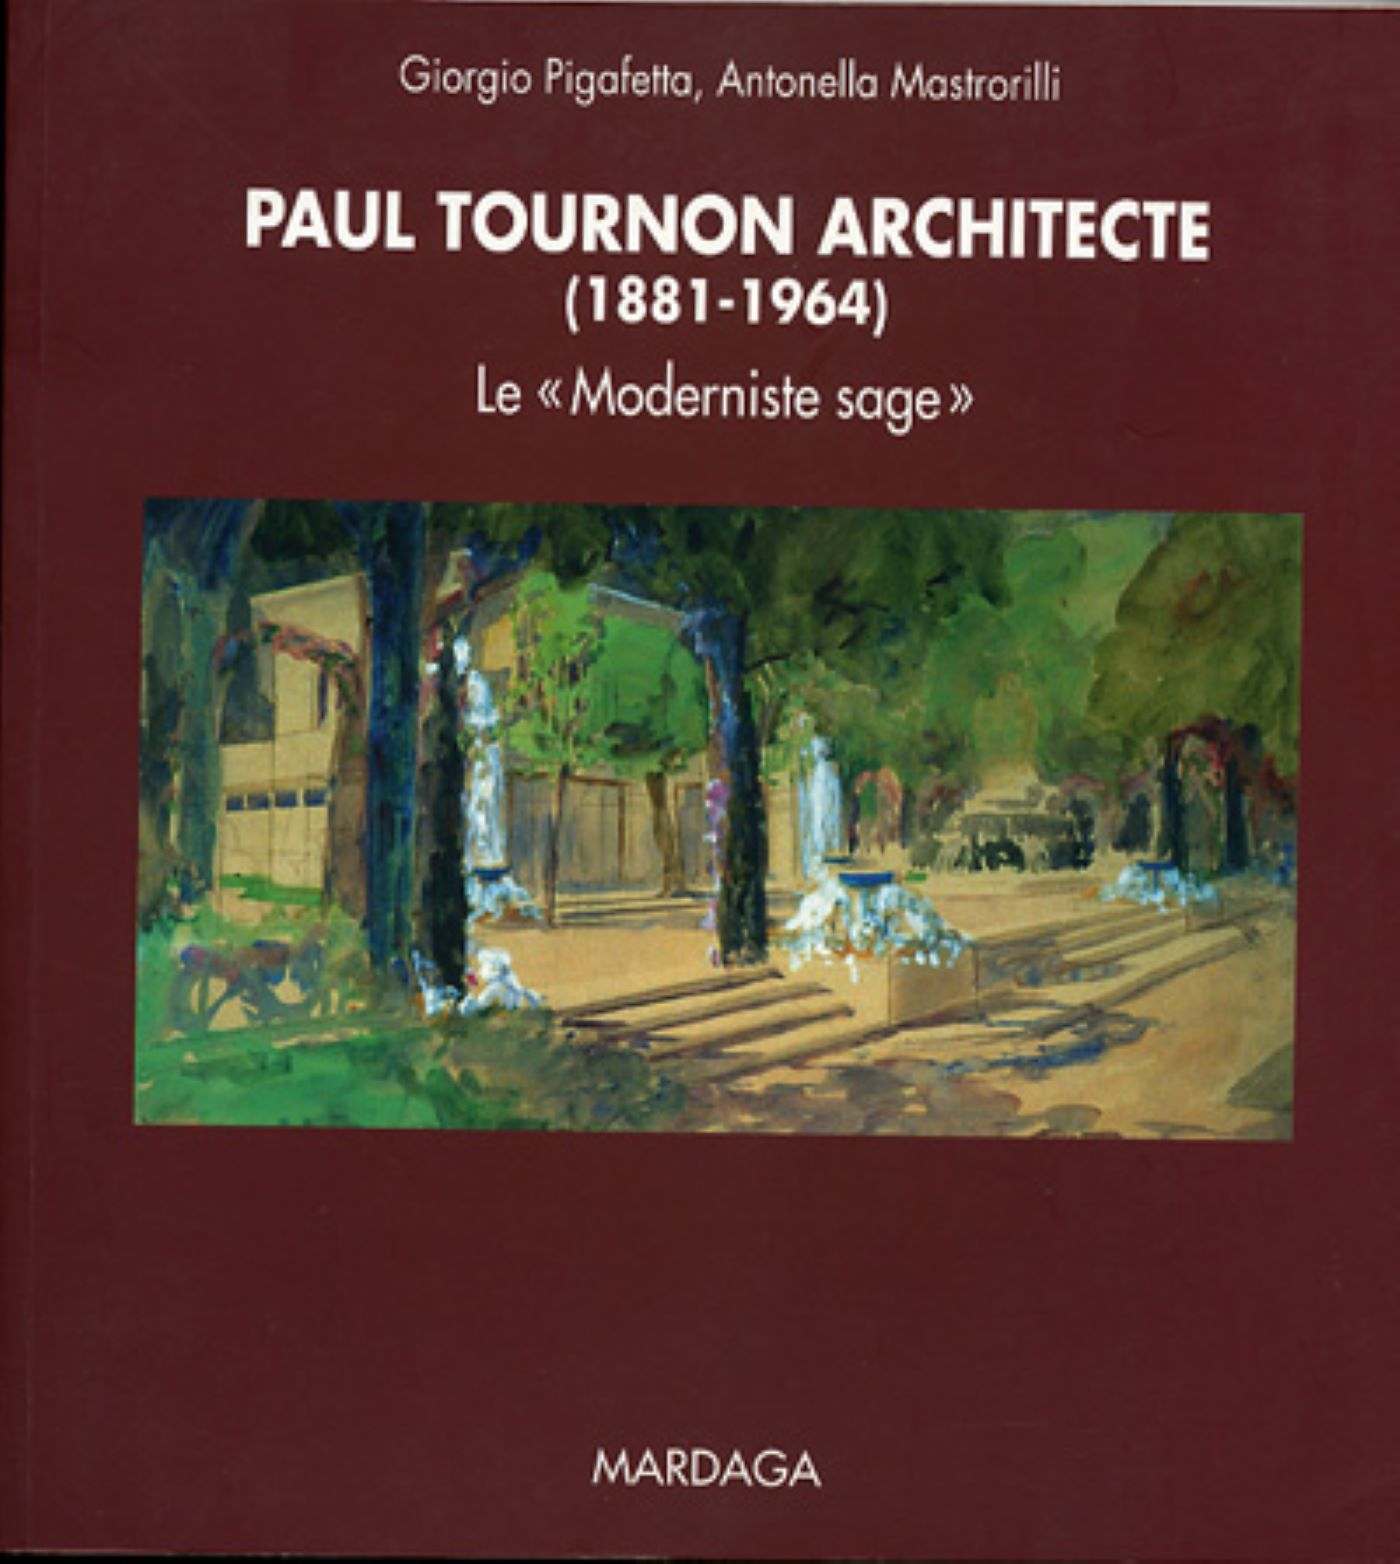 PAUL TOURNON ARCHITECTE 1883-1965